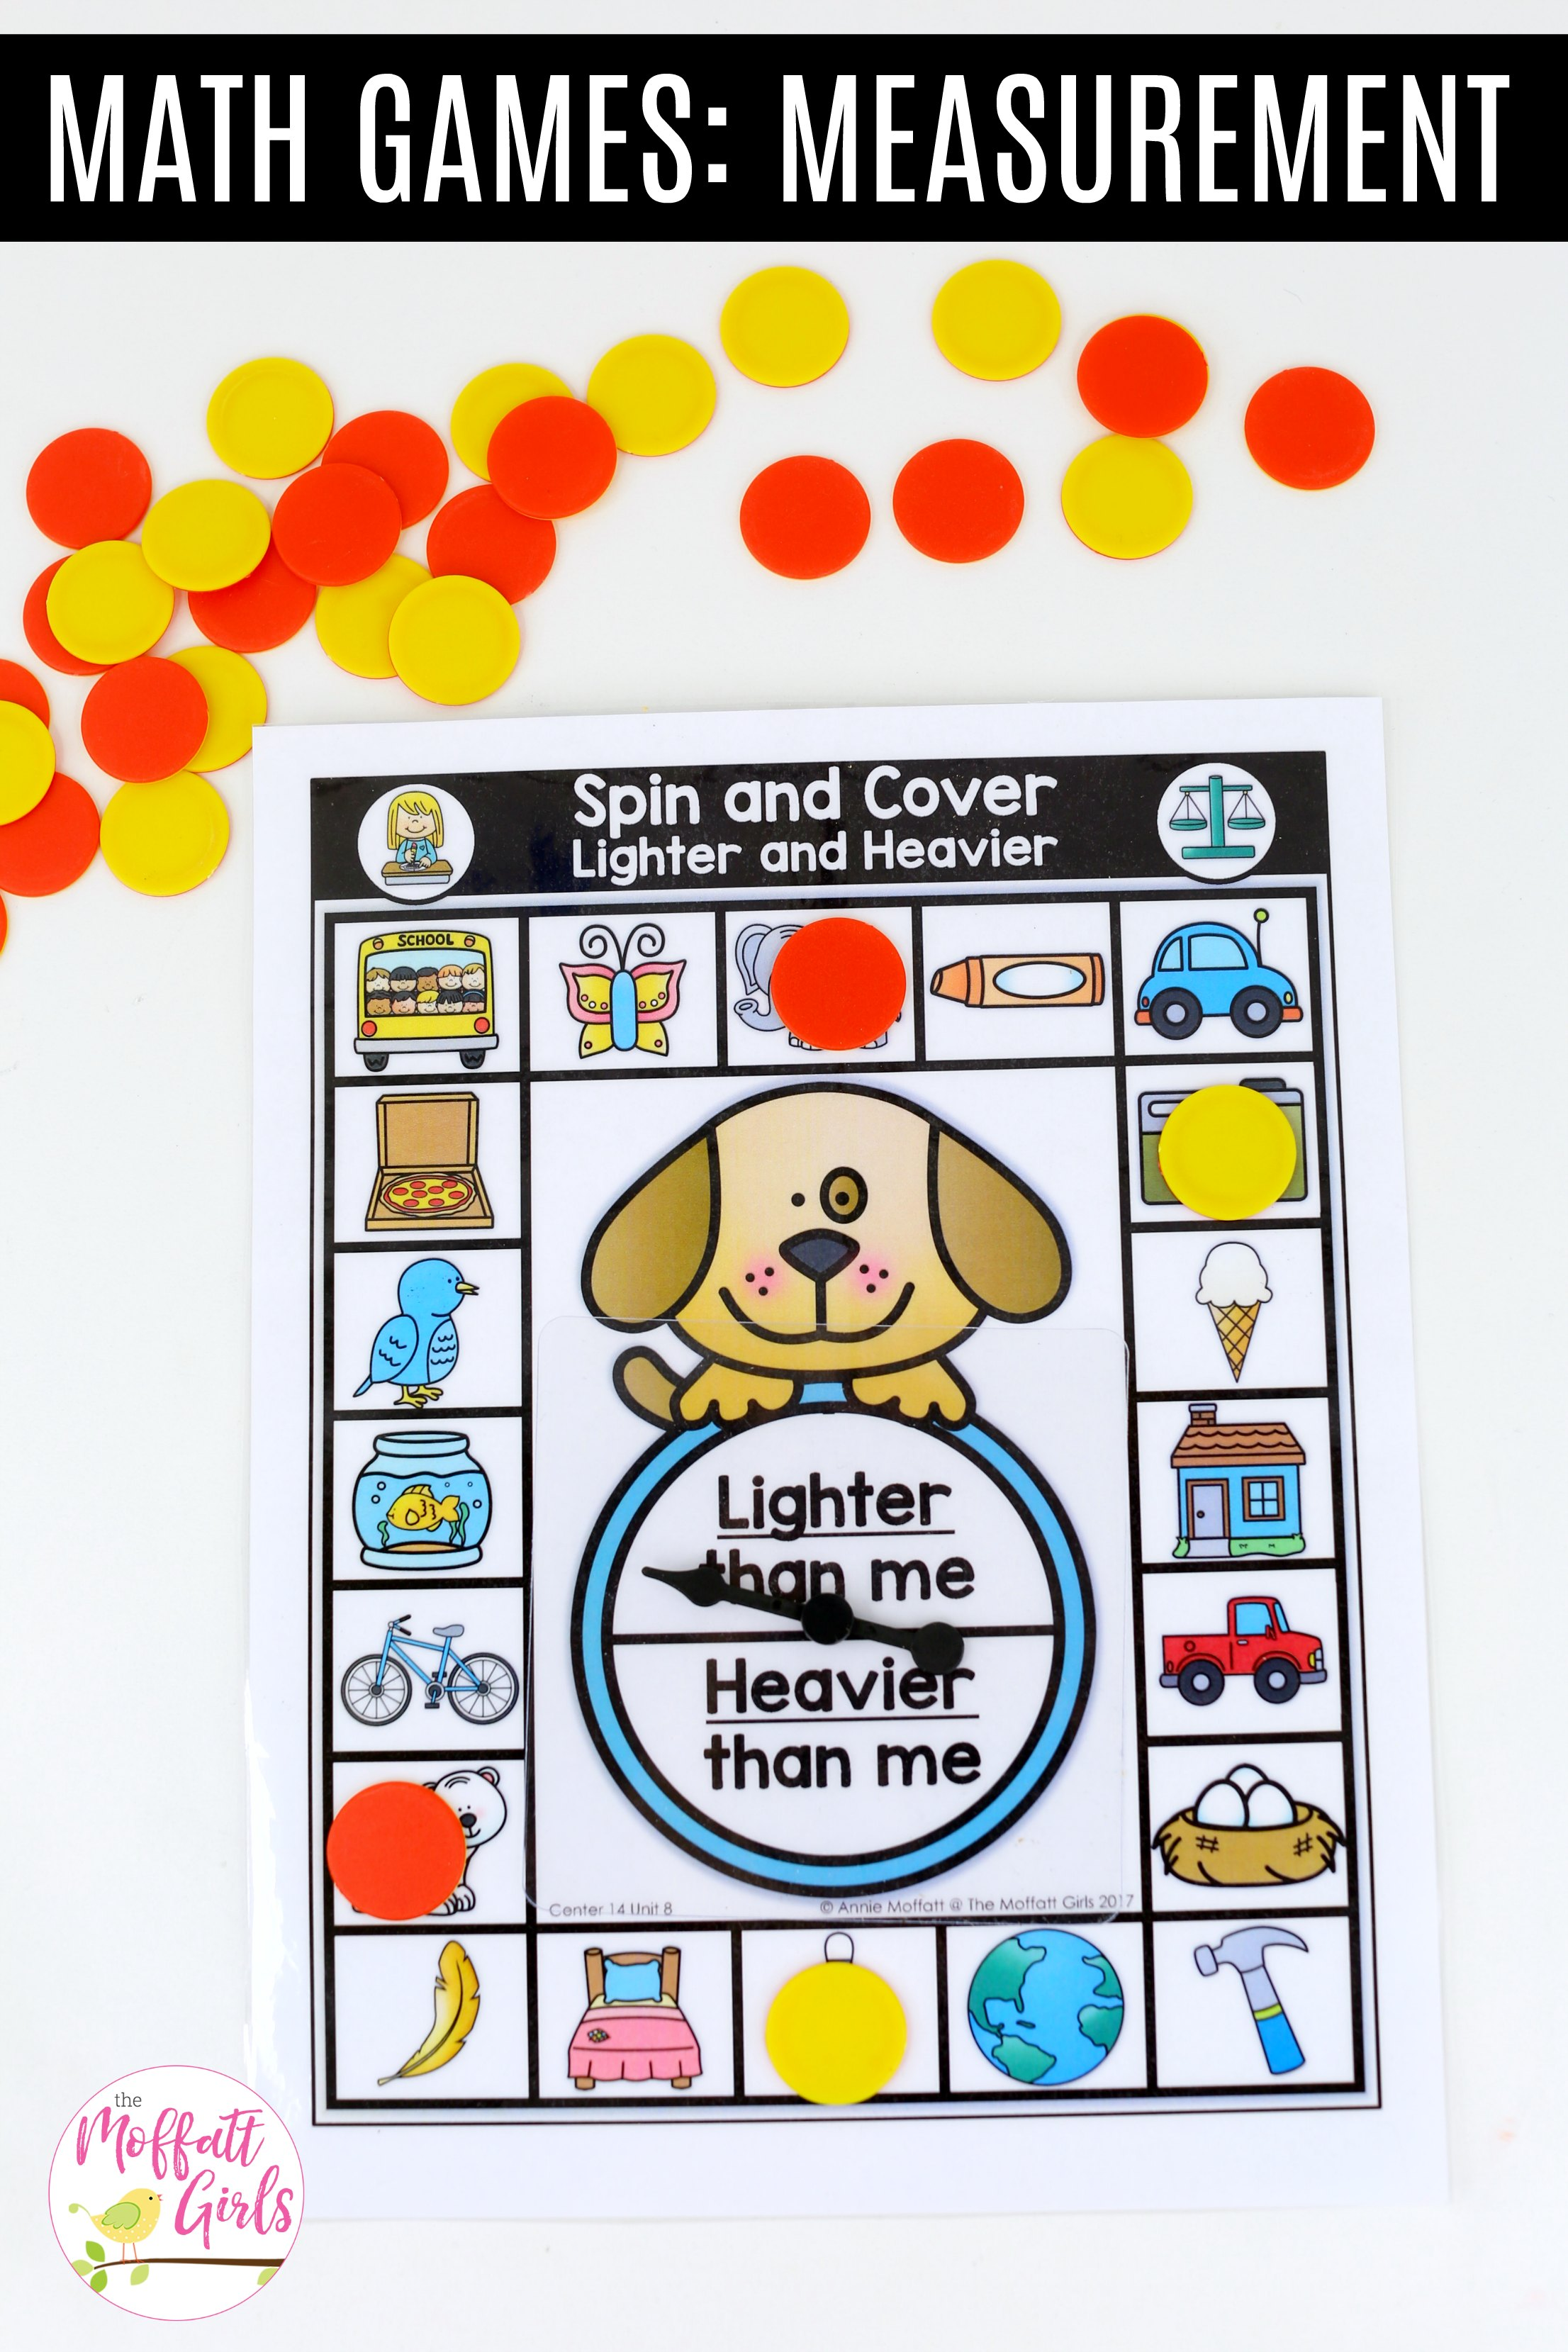 Spin And Cover Lighter Heavier 1b